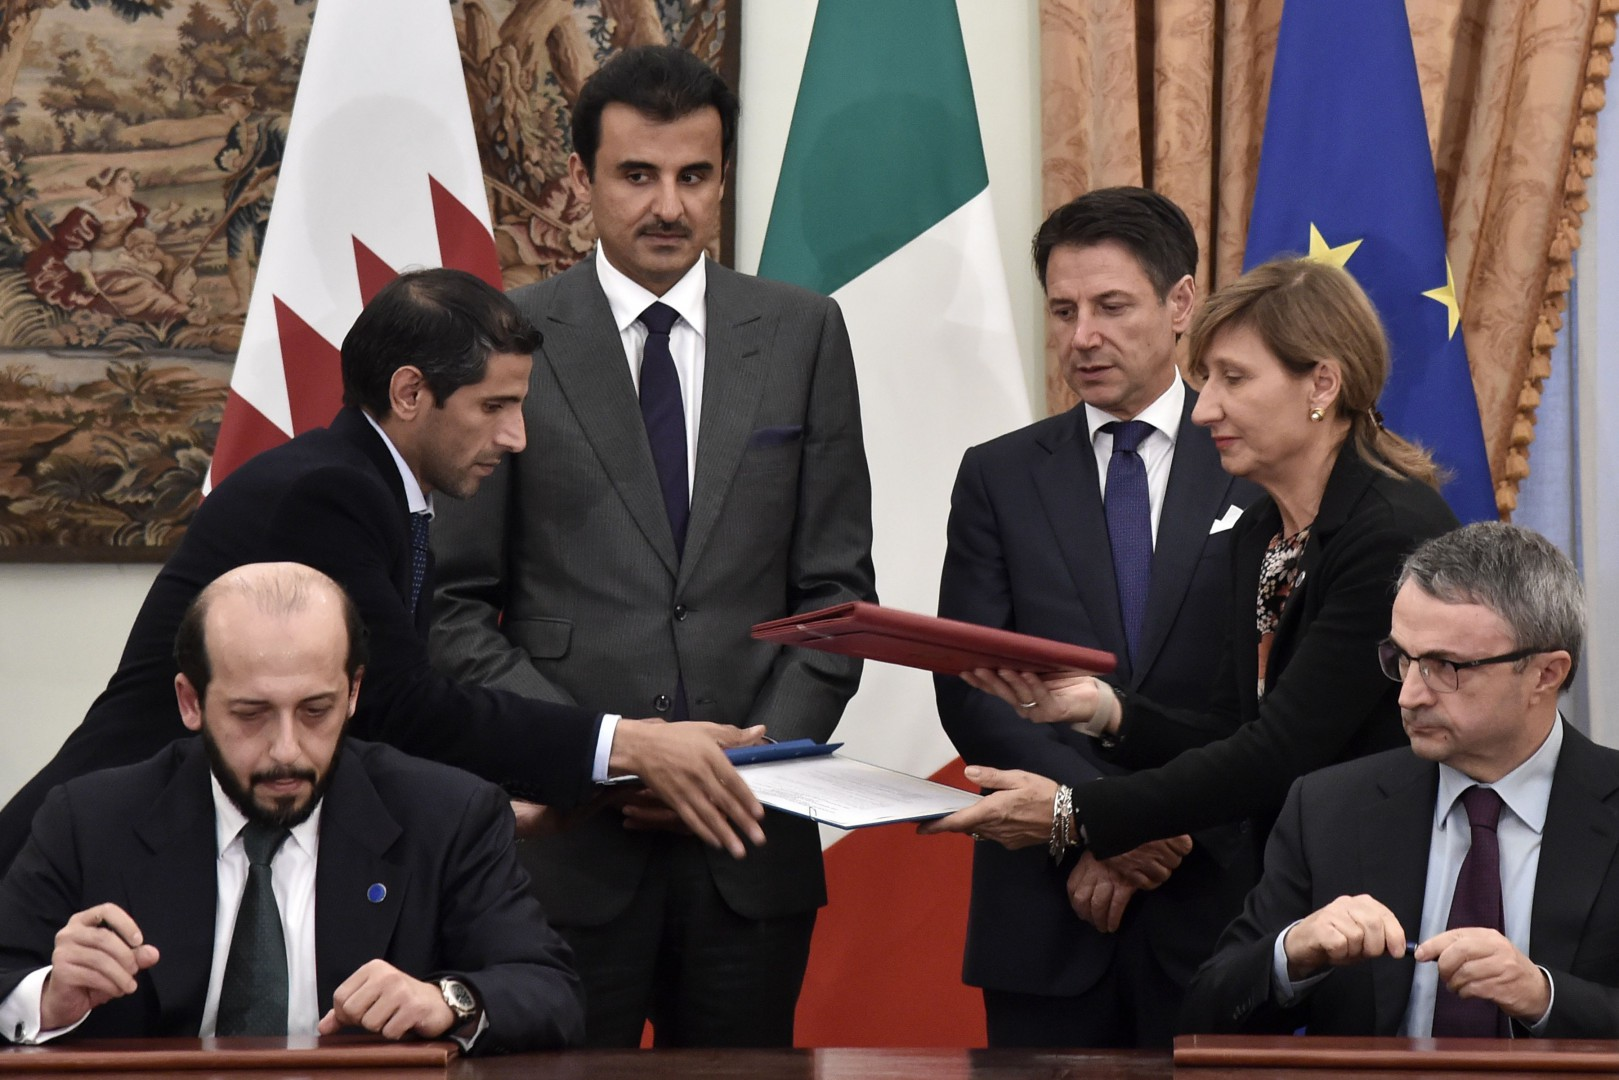 Italyís Prime Minister Giuseppe Conte (3rdR) and Qatar's Sheikh Tamim bin Hamad al-Thani (3rdL) attend a contract signing ceremony following their meeting at Villa Phamphili in Rome on November 20, 2018. - Sheikh Tamim bin Hamad al-Thani pays a two-day visit in the Italian capital to conclude a series of bilateral deals in the areas of health, food and agriculture, sport and research. (Photo by TIZIANA FABI / AFP)